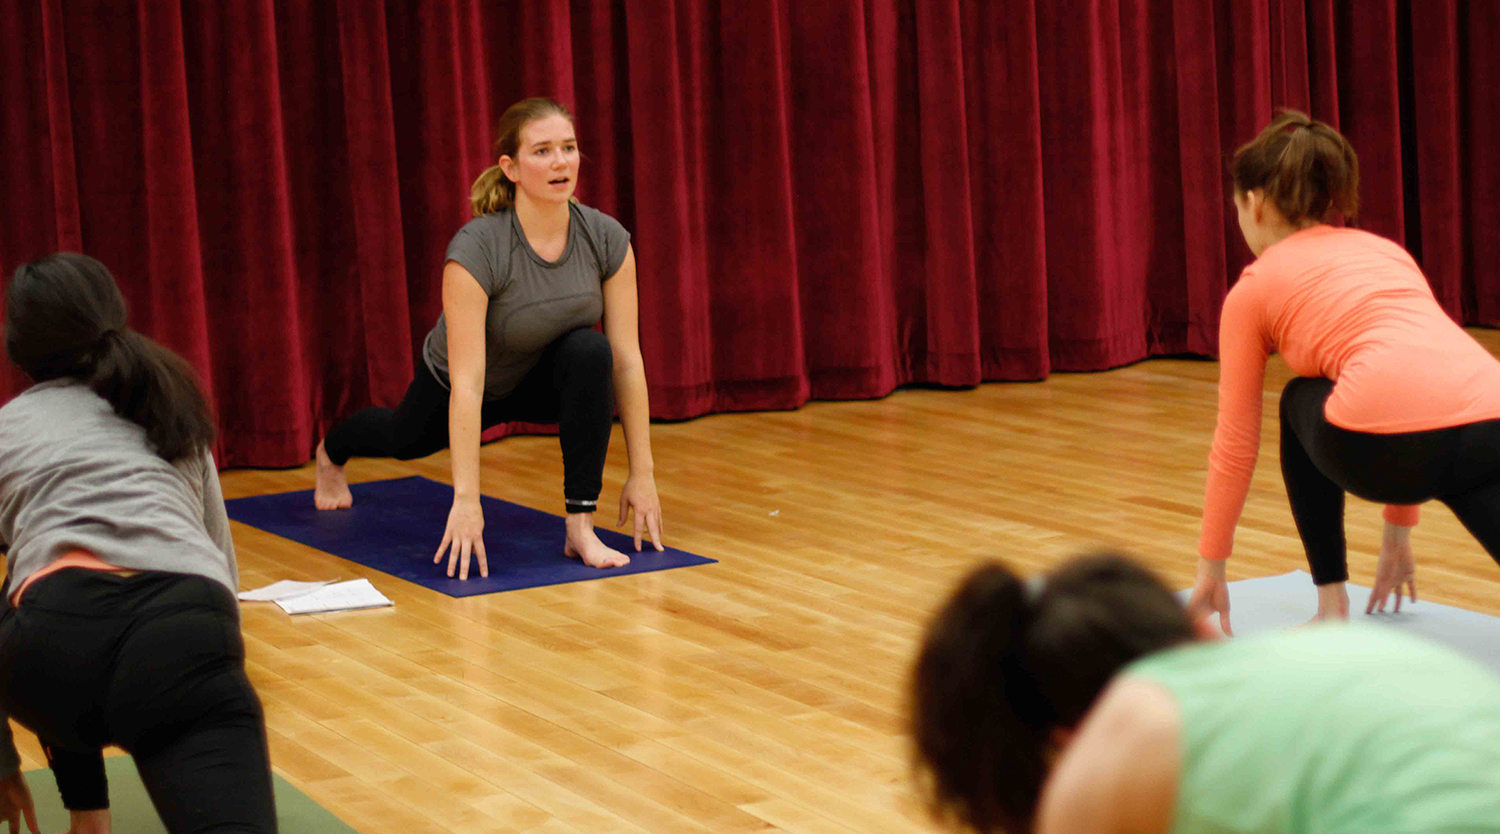 Katie McLaughlin '15 teaches a WesBAM! class called Vinyasa Flow Fusion, which combines meditation, breathing techniques and traditional asana practice for whole body health and happiness.